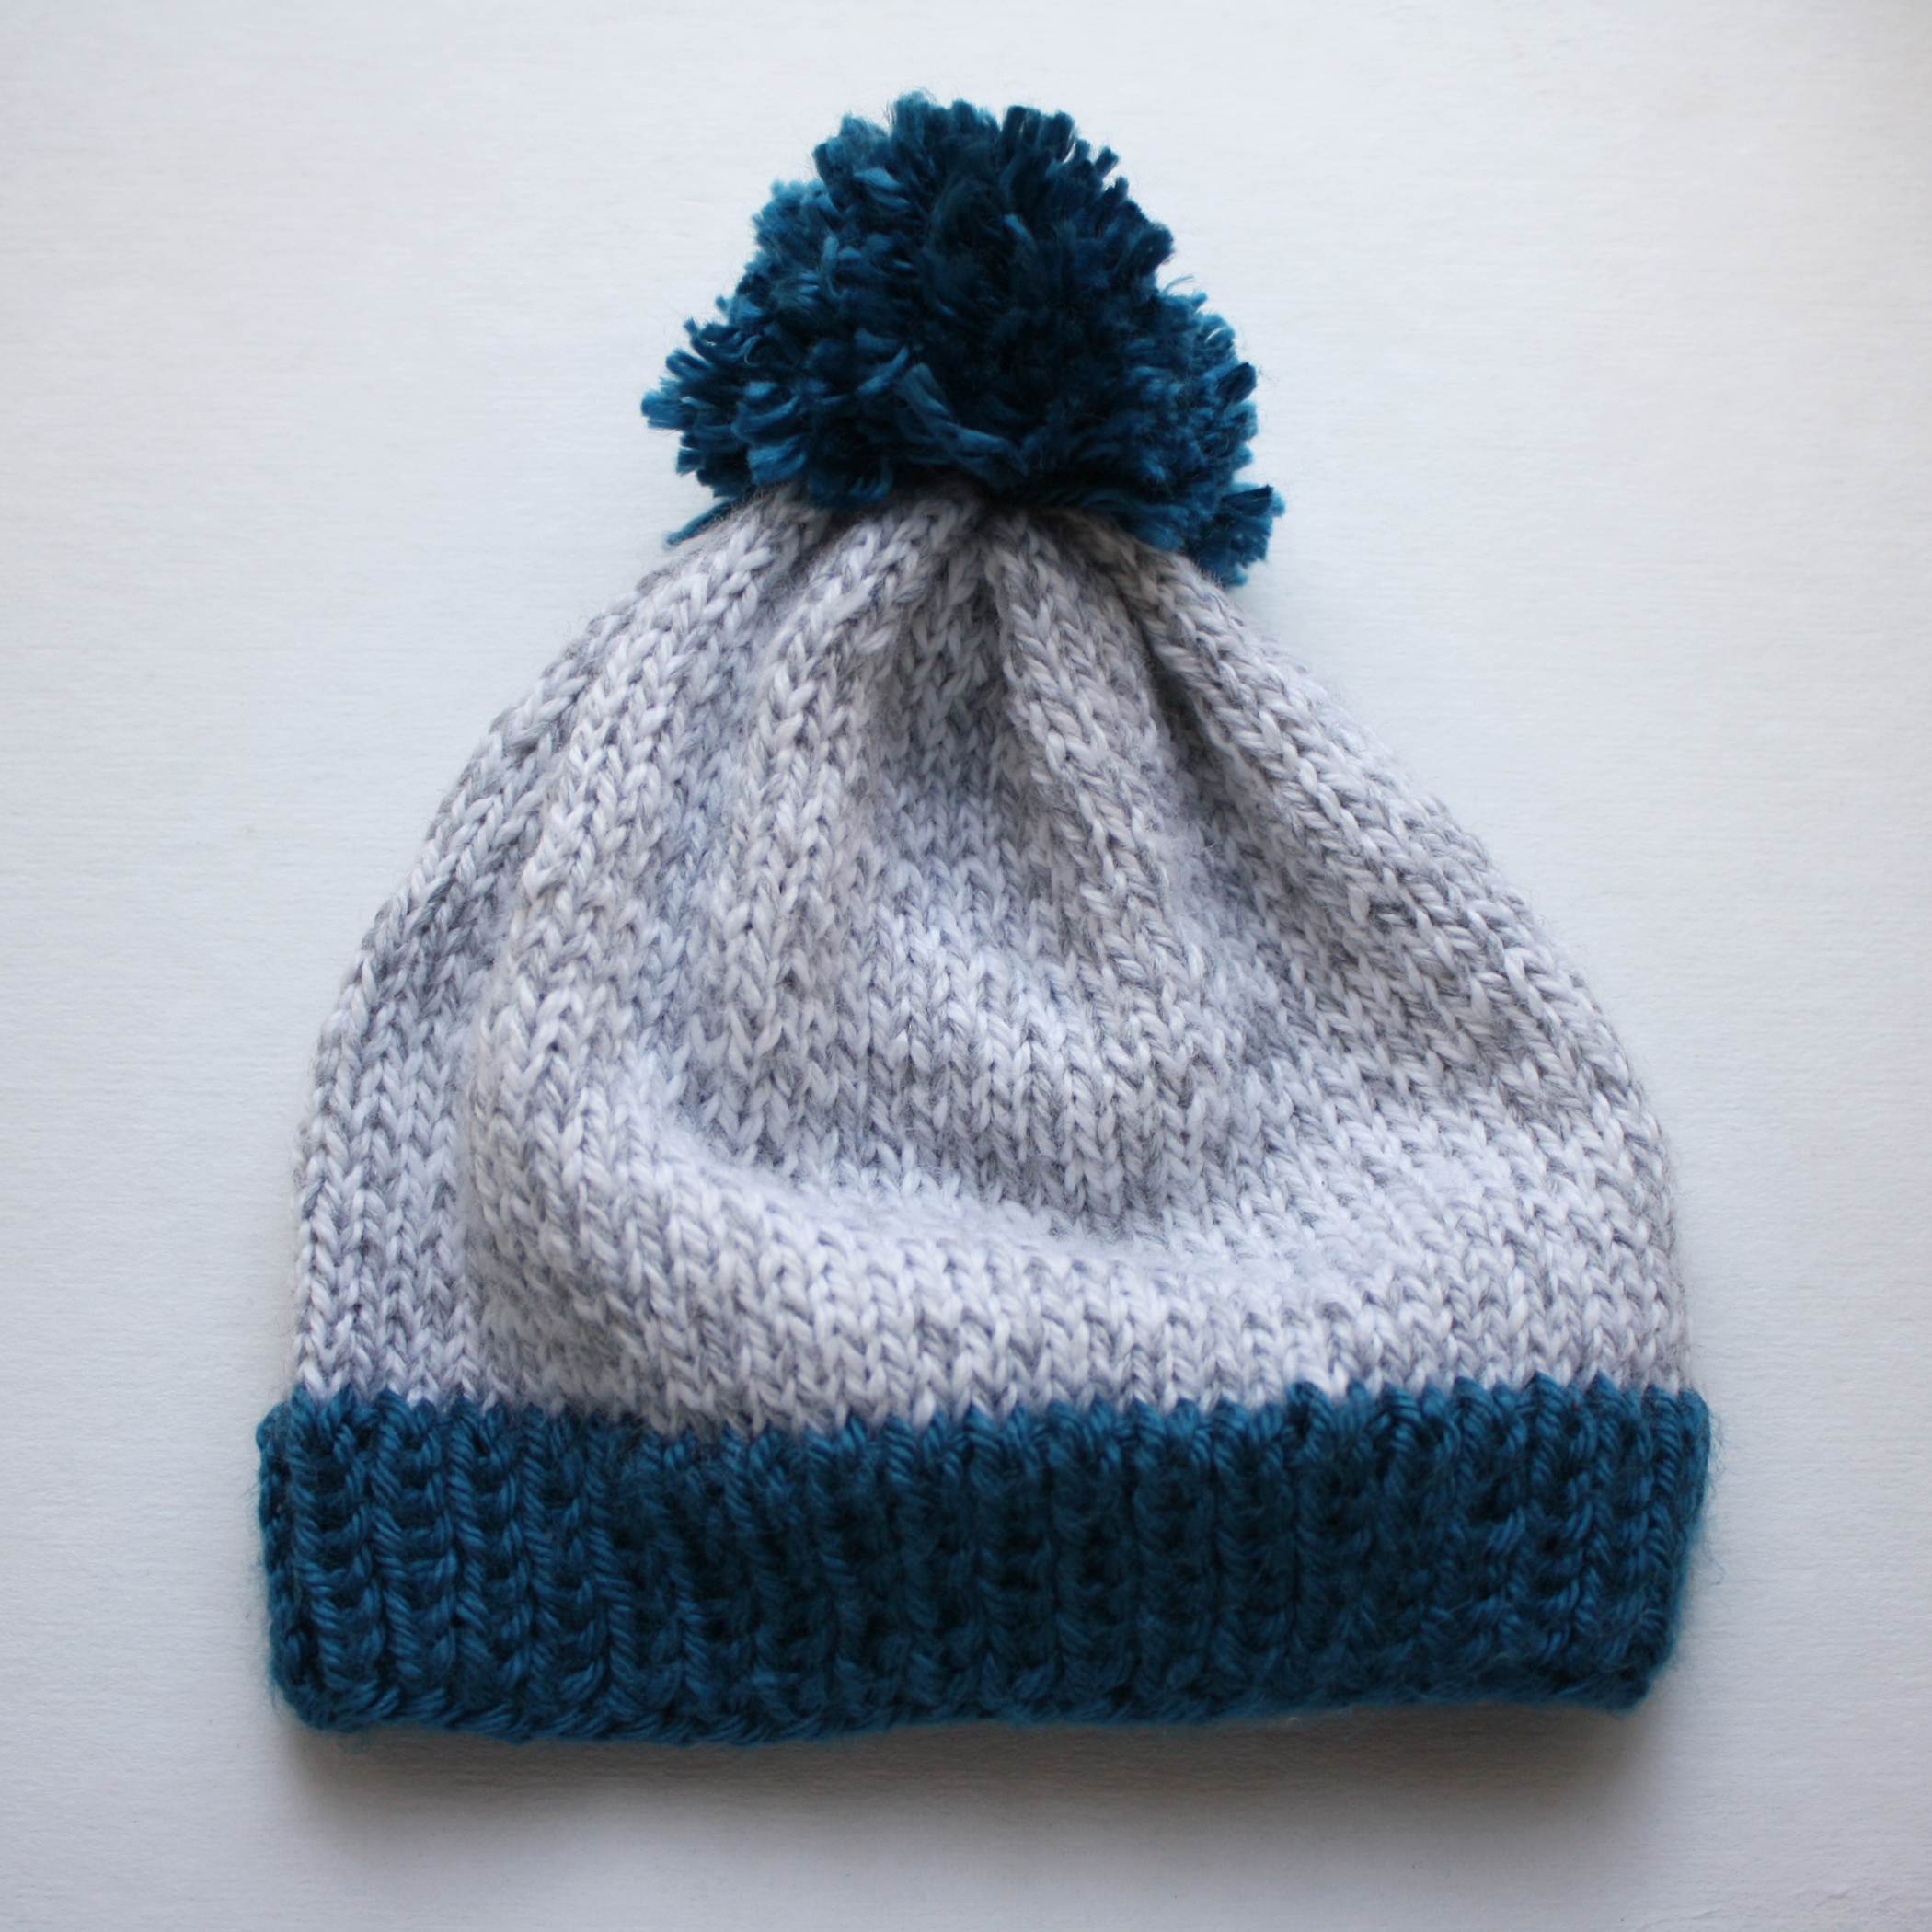 Knitting Pattern For Beanie : michael ann made.: Big Pom Baby Beanie - Now With Free PDF ...